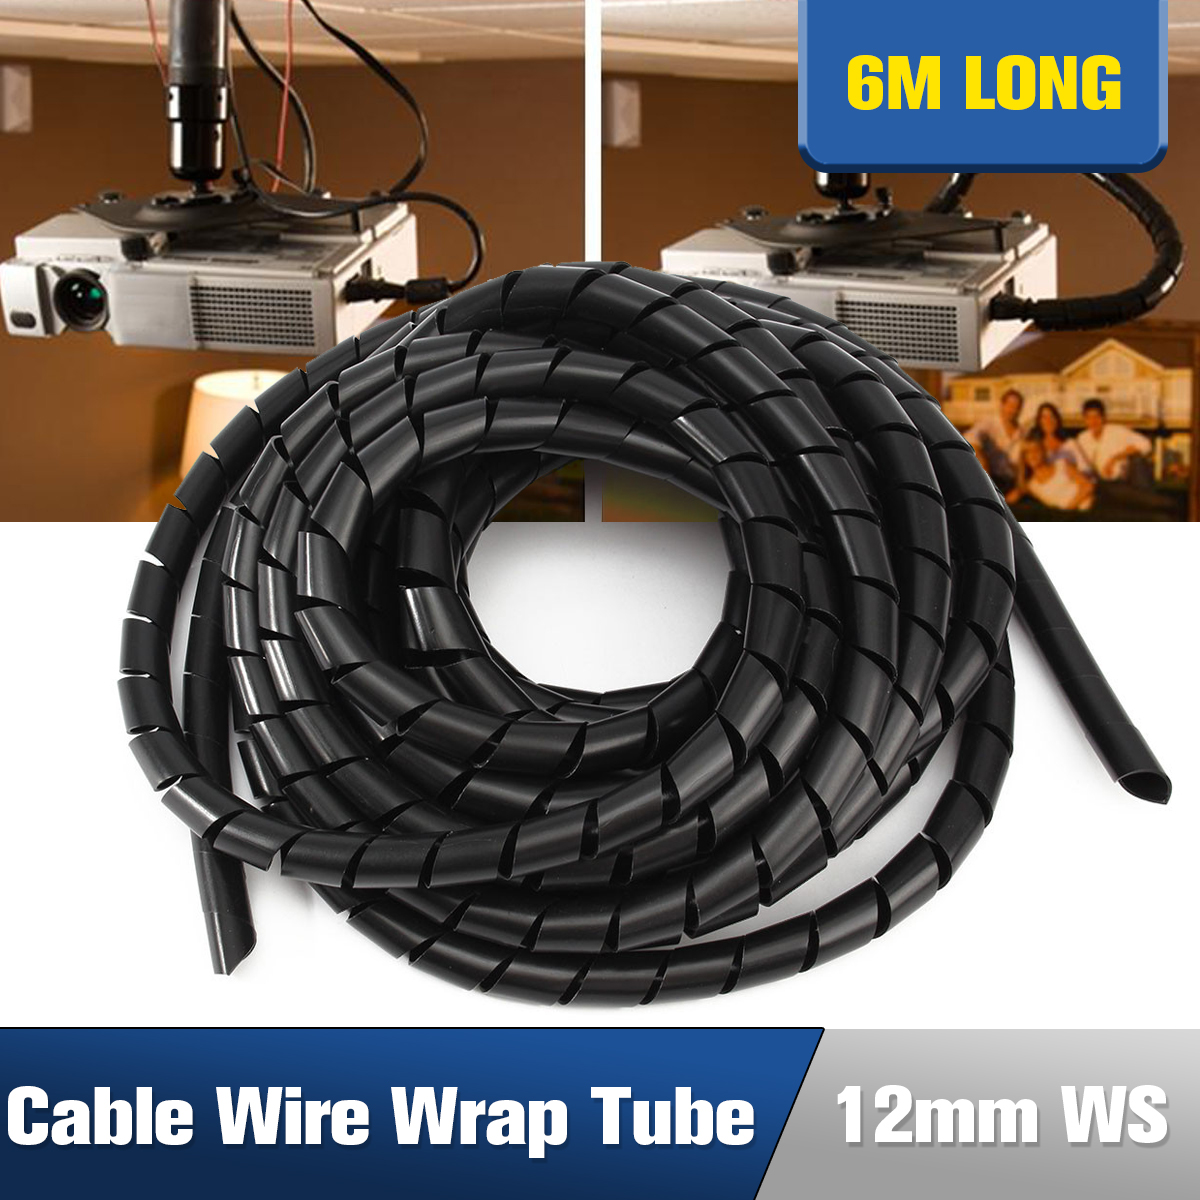 Cut Rate 65m 12mm Flexible Black Cable Sleeve Pe Polyethylene Wiring Accessories Spiral Wire Wrap Tube Ws